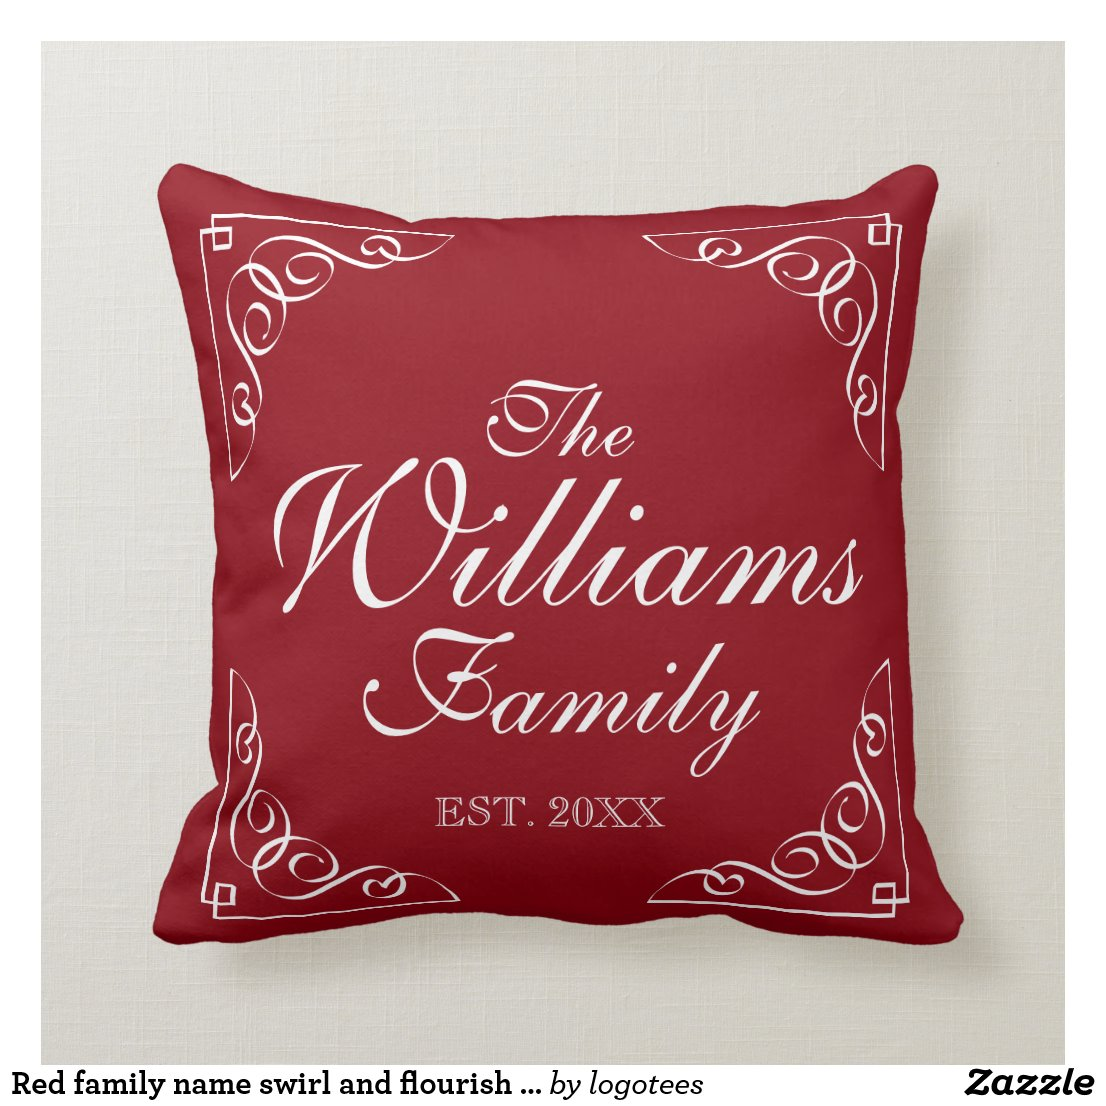 Red family name swirl and flourish throw pillows